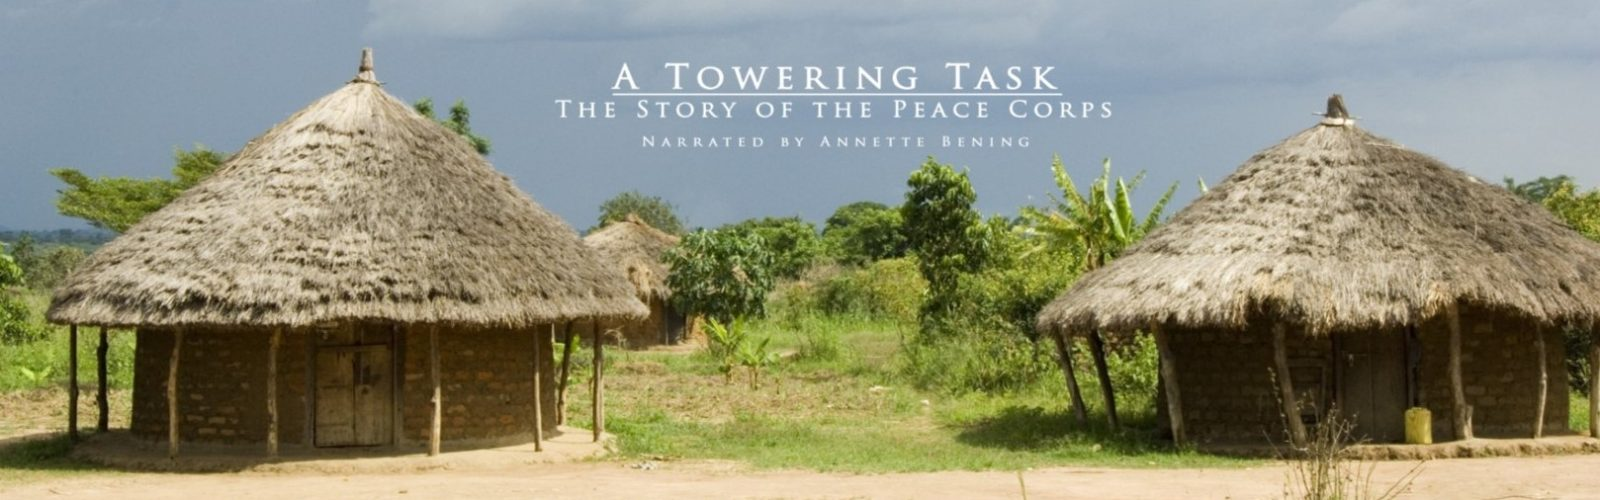 A Towering Task: The Story of the Peace Corps, narrated by Annette Bening. Two huts stand against a cloudy background amid lush greenery.